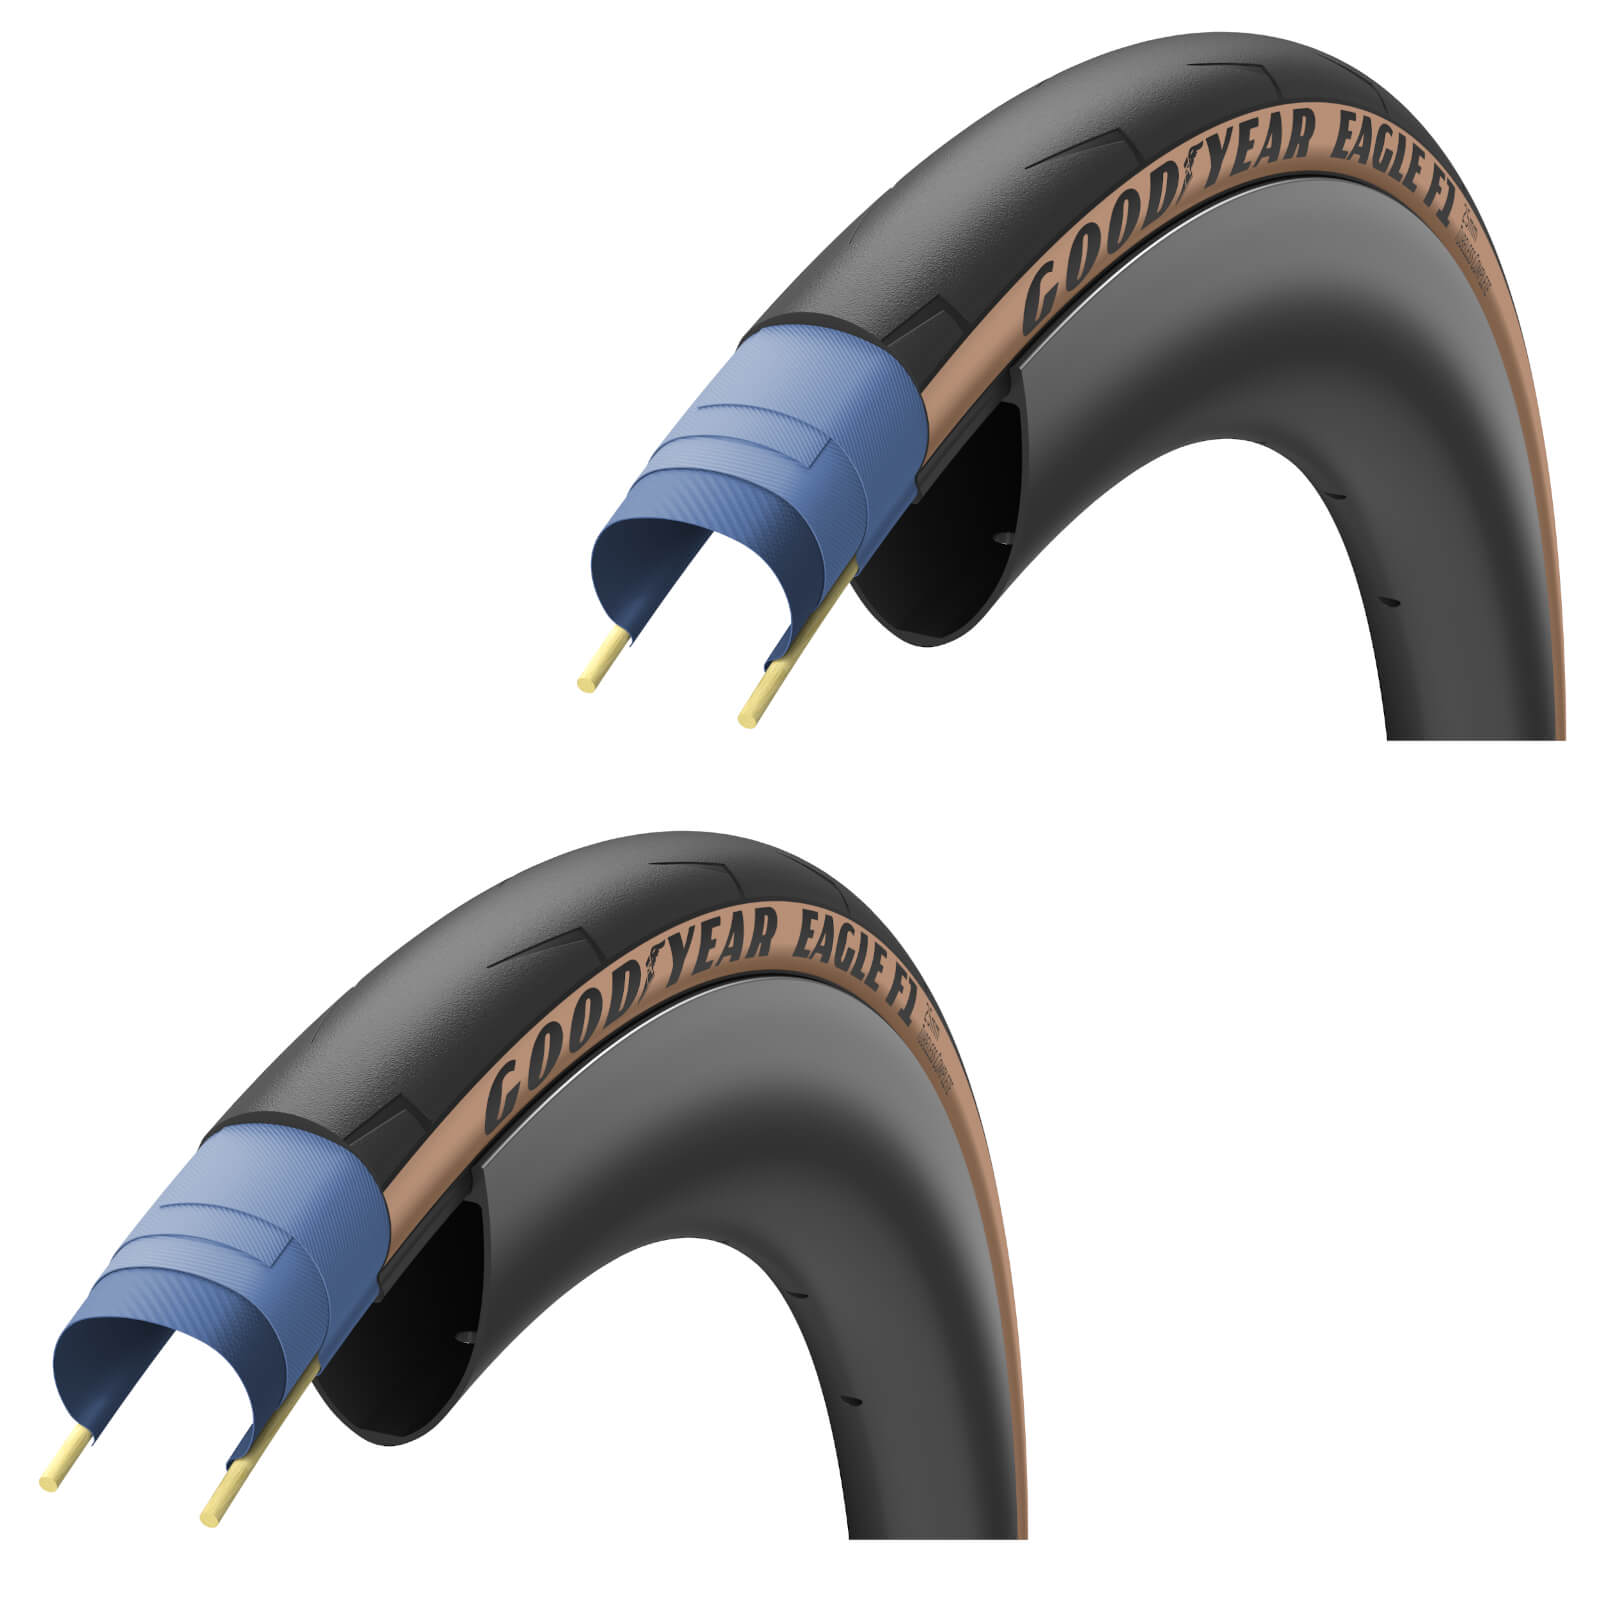 Goodyear Eagle F1 Tubeless Road Tyre Twin Pack - 700c x 25mm - Tan